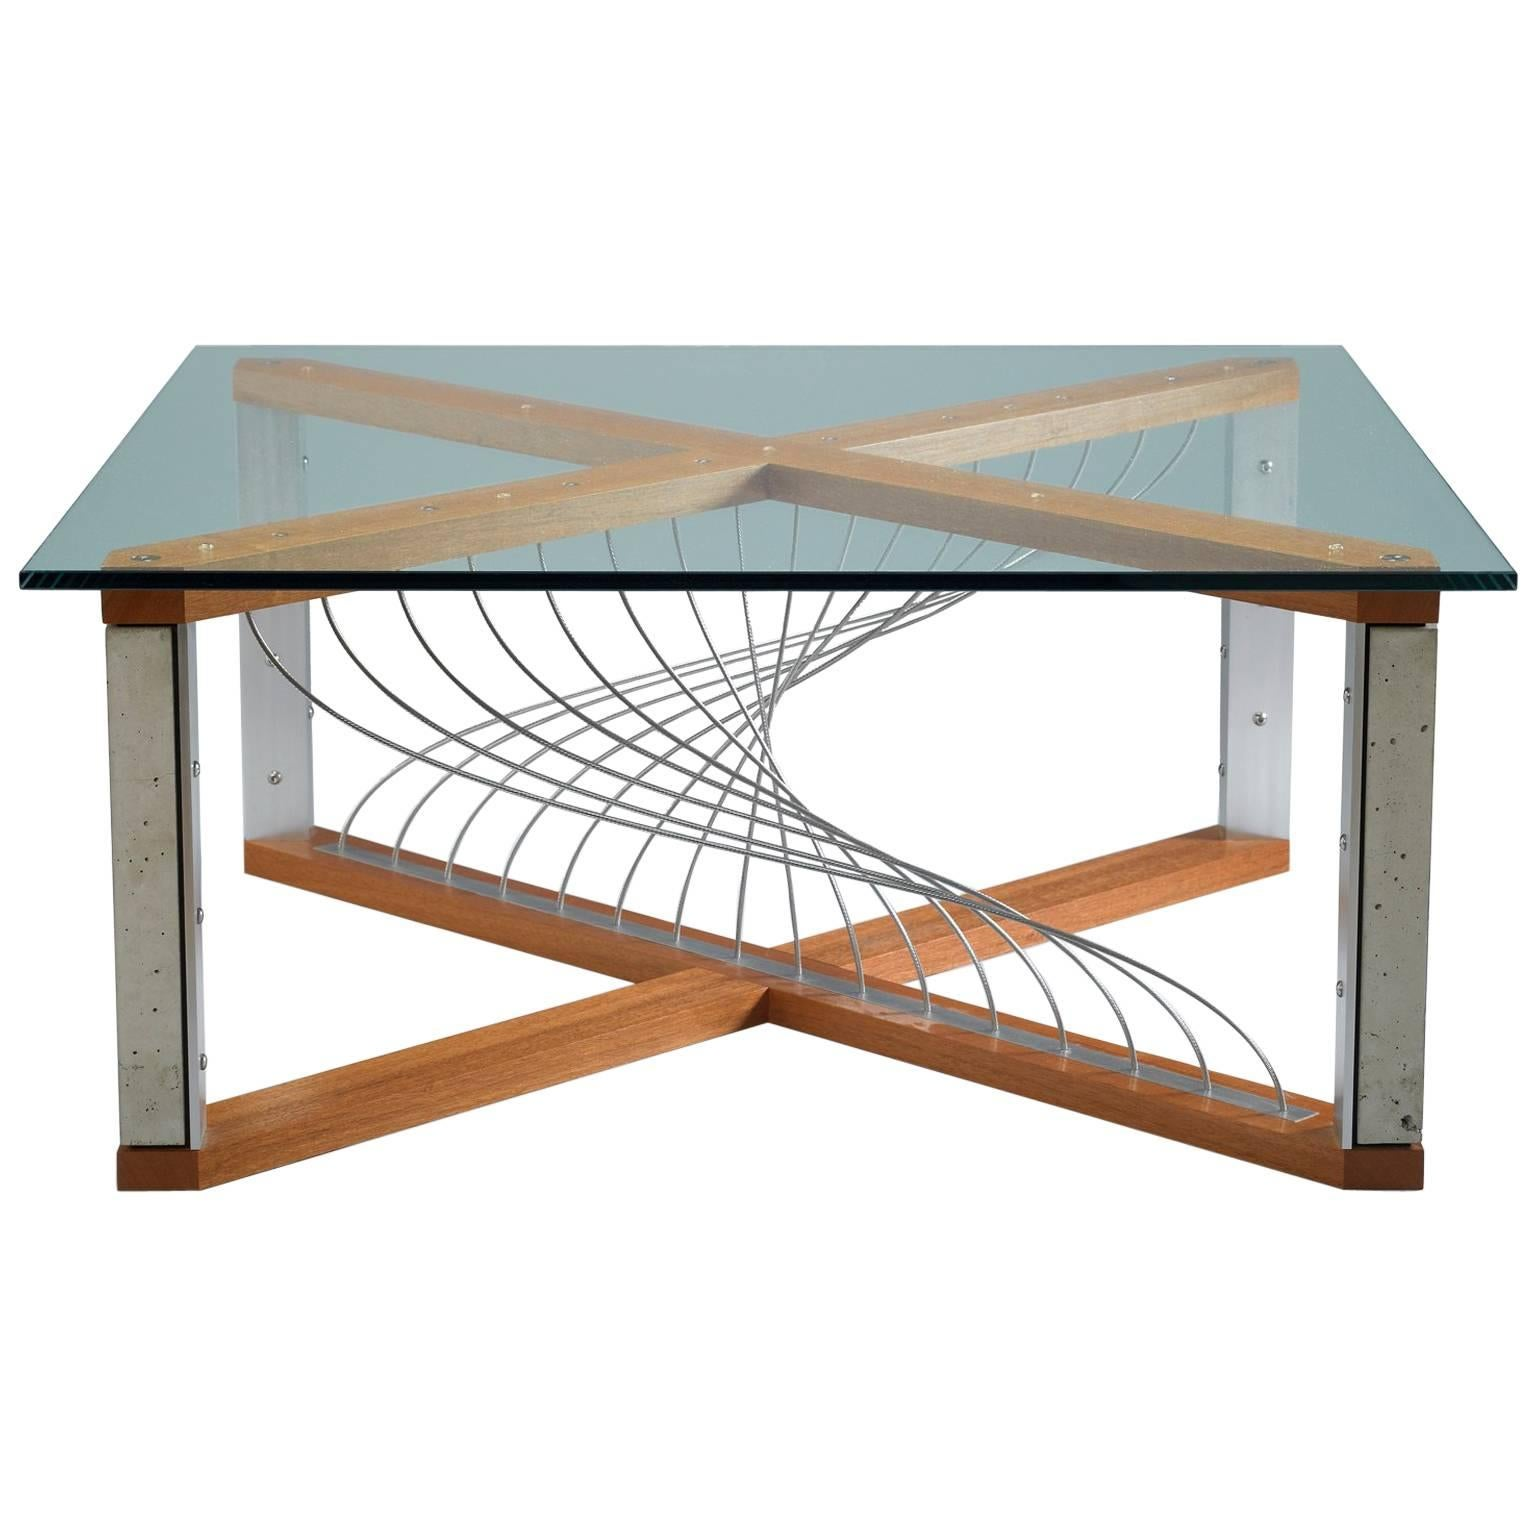 Argon, Handmade Modern Industrial Coffee Table With Metal And Mahogany Wood  For Sale